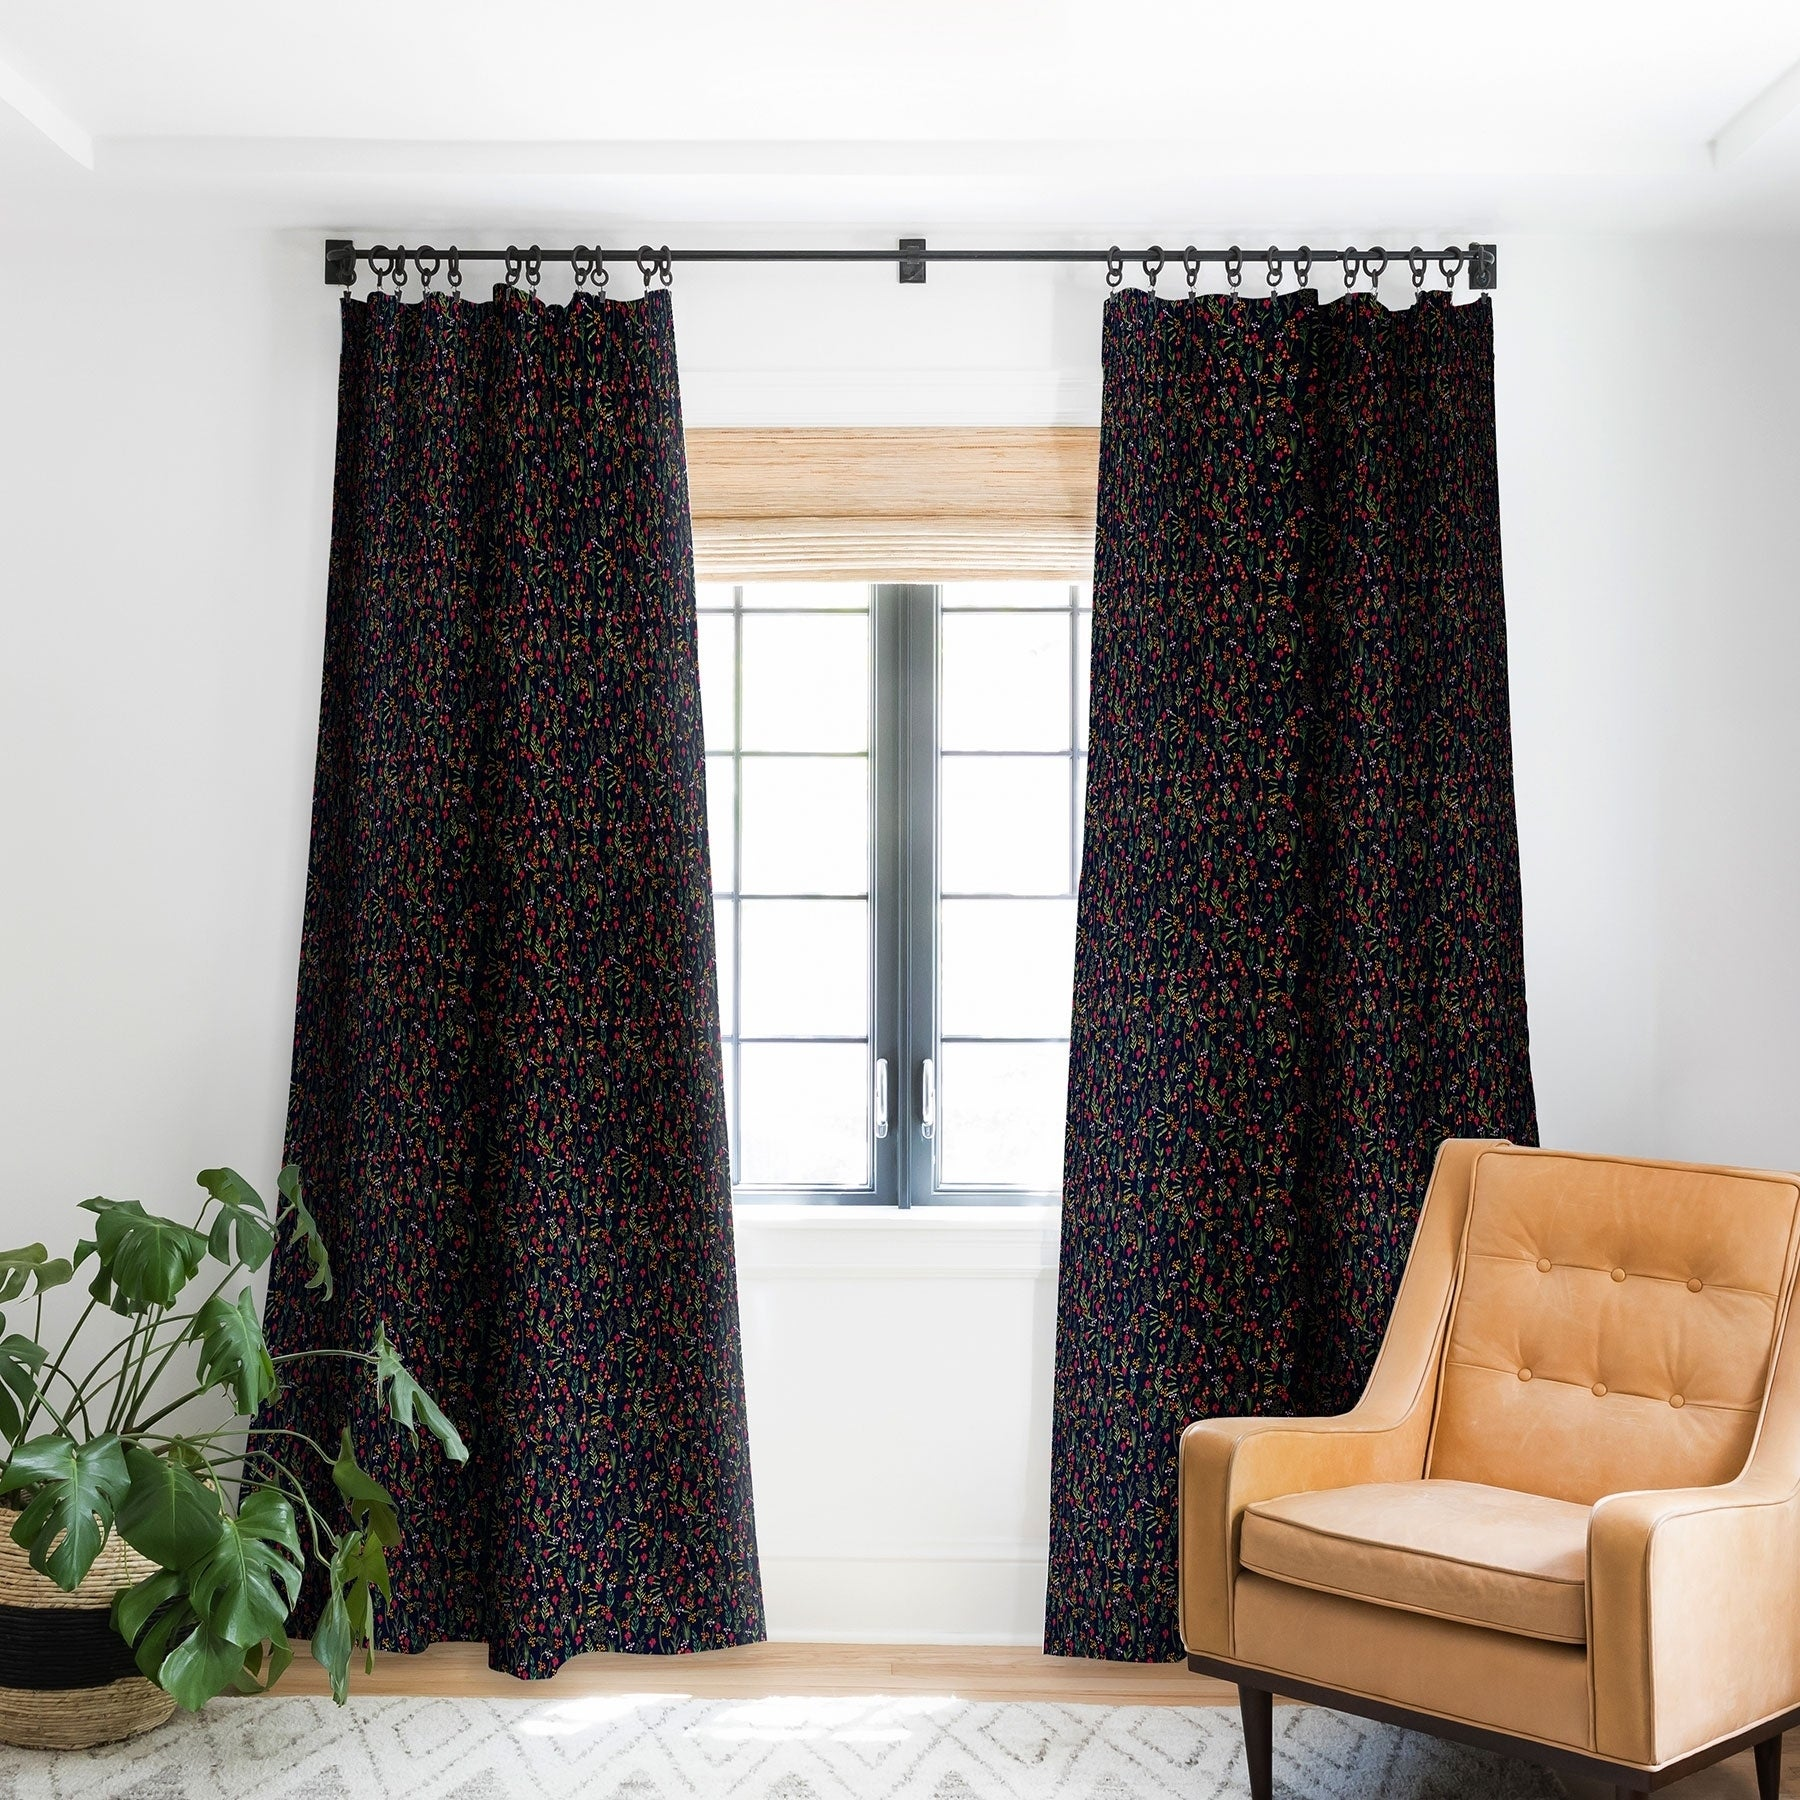 Shop For Iveta Abolina Margaux Blackout Curtain Panel Ships To Canada On Everything At Overstock Your Online Home Decor Outlet Store 22046660